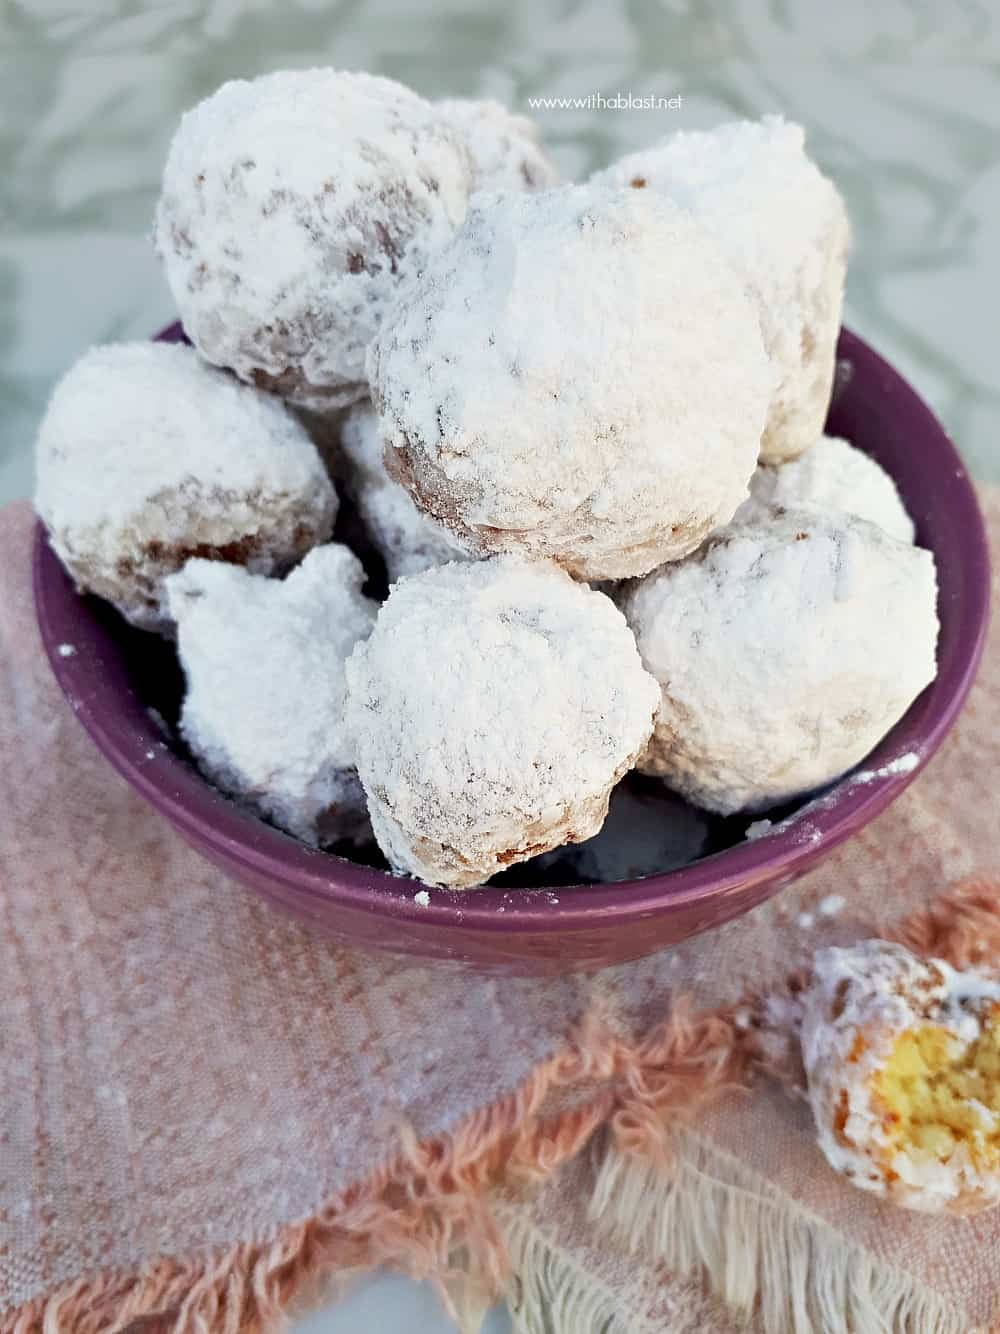 Italian Zeppole is the most delicious sweet treats ! Deep-fried dough, almost like a beignet but much chewier and more dense - more of a Ricotta donut.